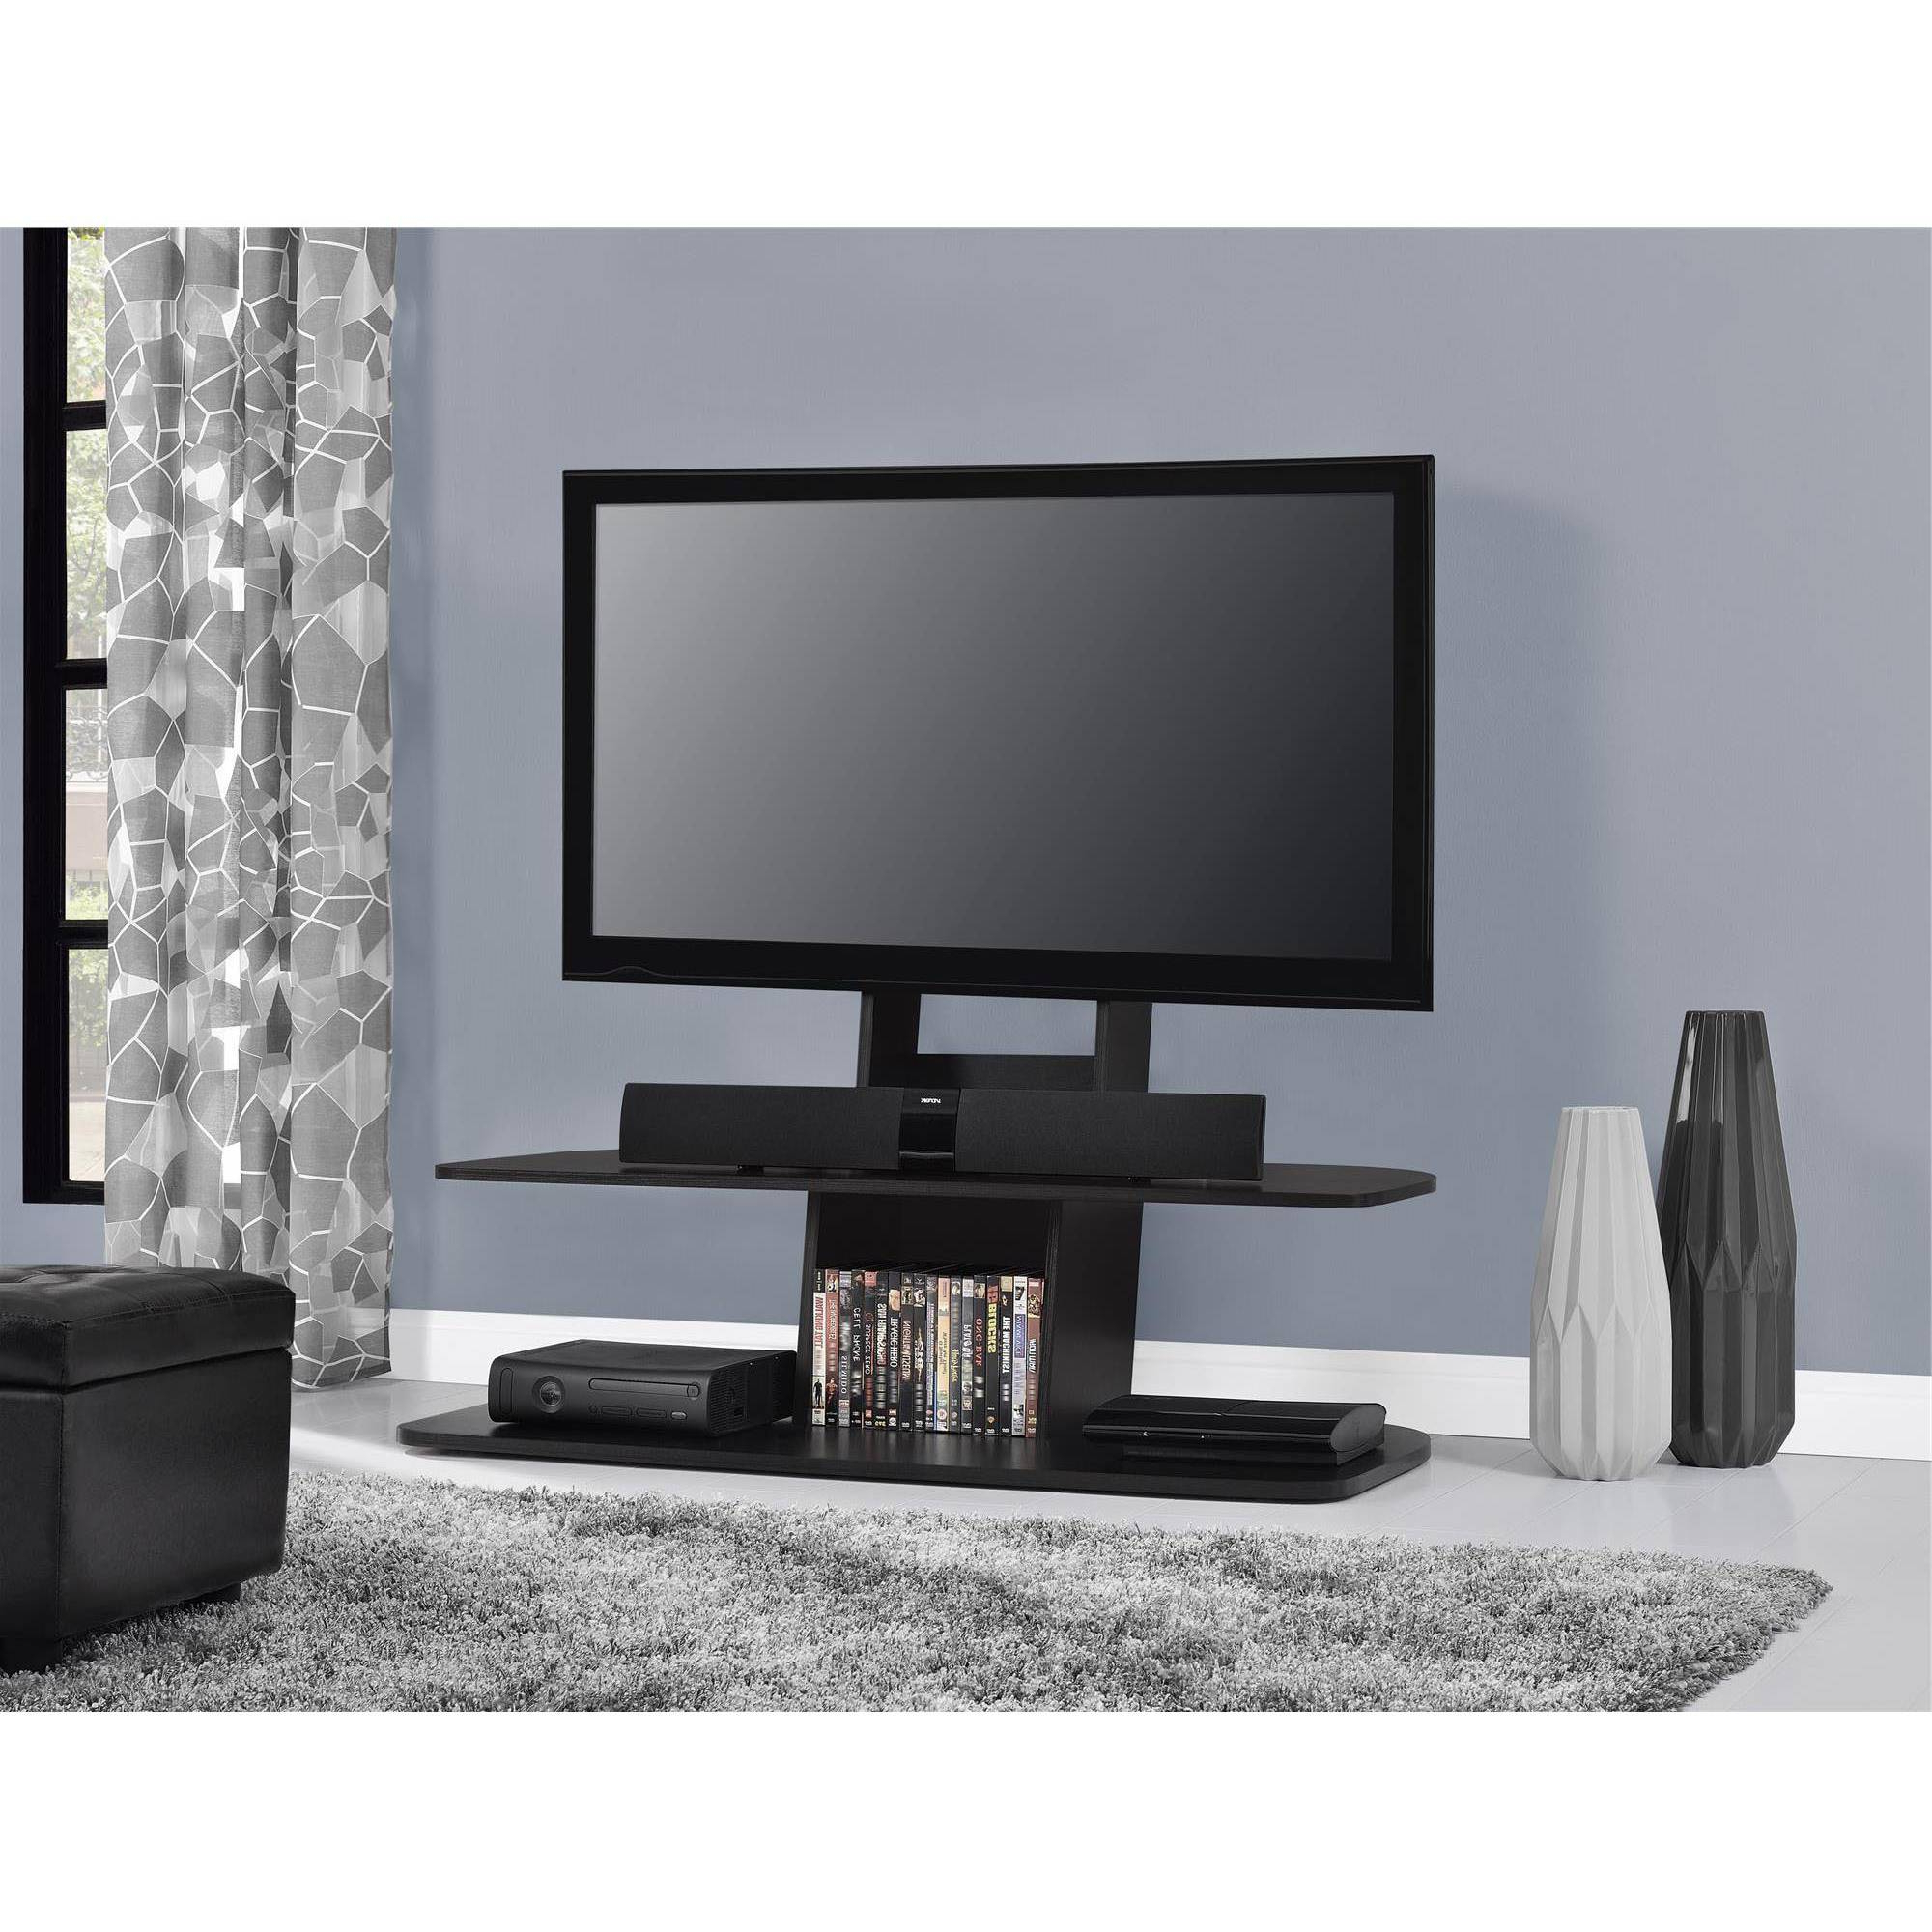 White Tv Stand 65 Inch Jigsy Low Tv Stand Modern Grey Finish For Melrose Barnhouse Brown 65 Inch Lowboy Tv Stands (View 7 of 10)